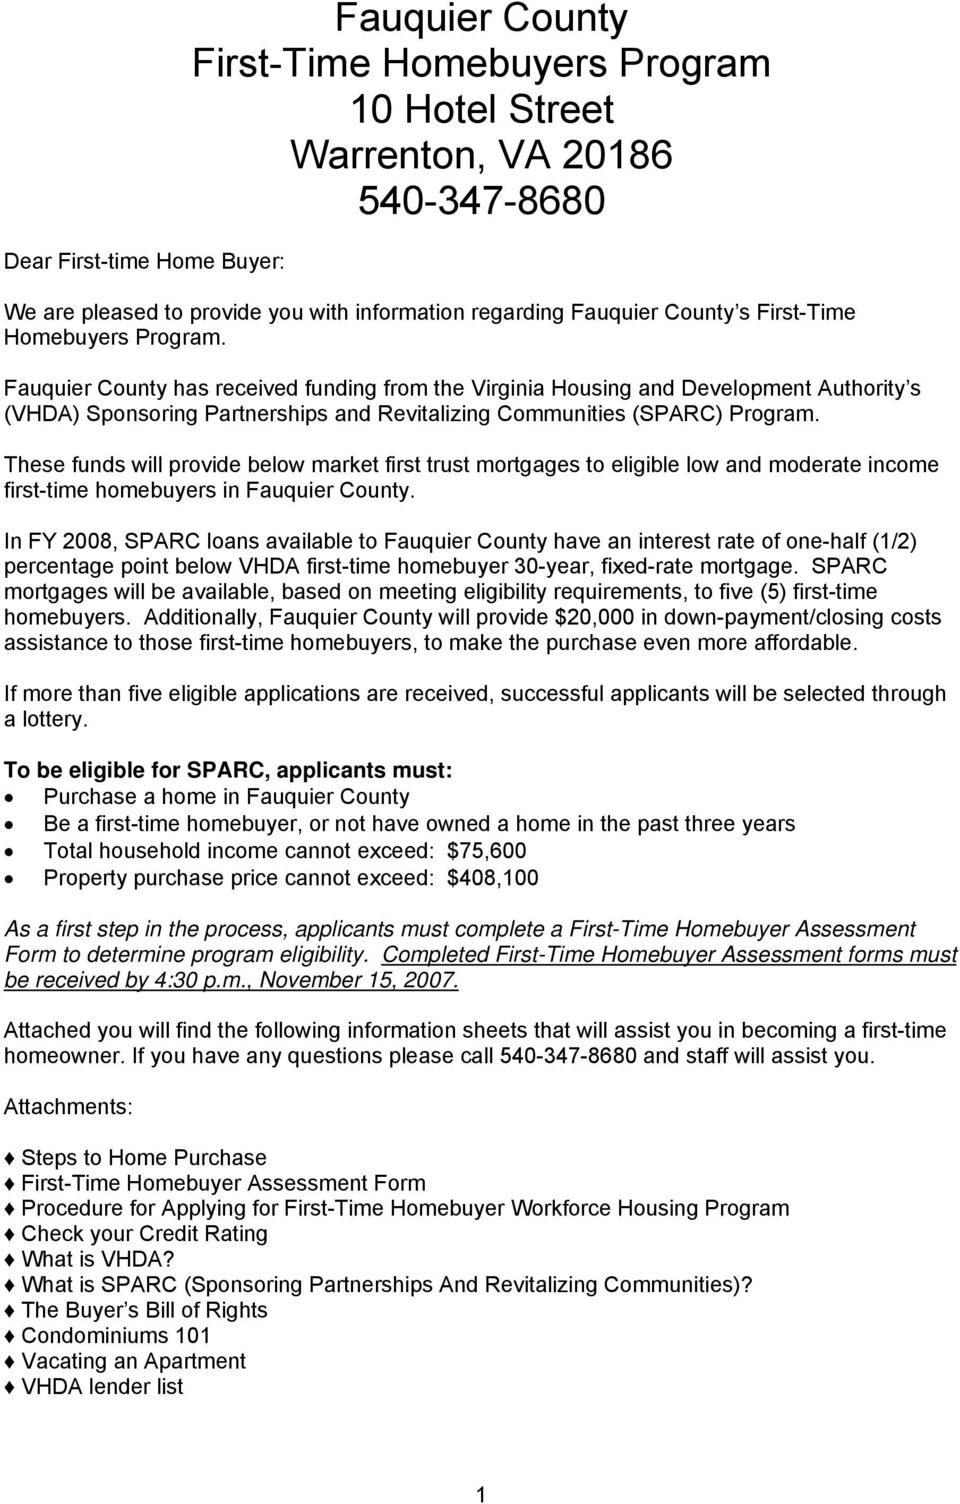 Fauquier County First Time Homebuyer Program Pdf